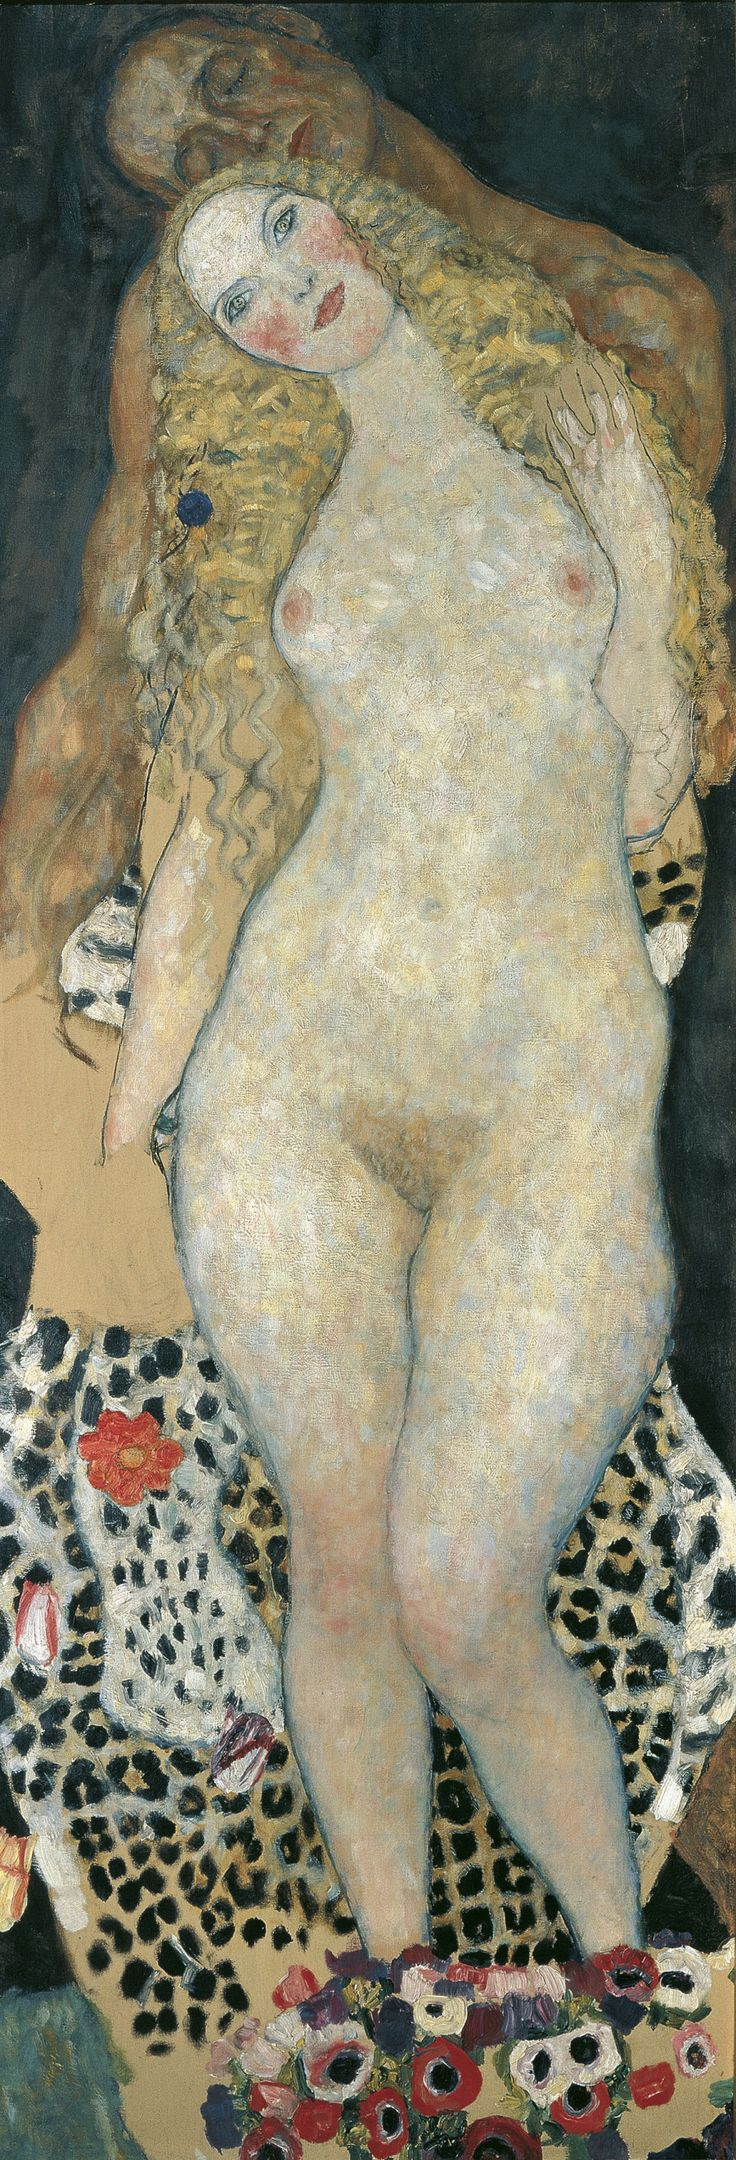 An unfinished piece by Gustav Klimt depicting biblical Adam and Eve is traveling to Boston from Vienna, Austria.